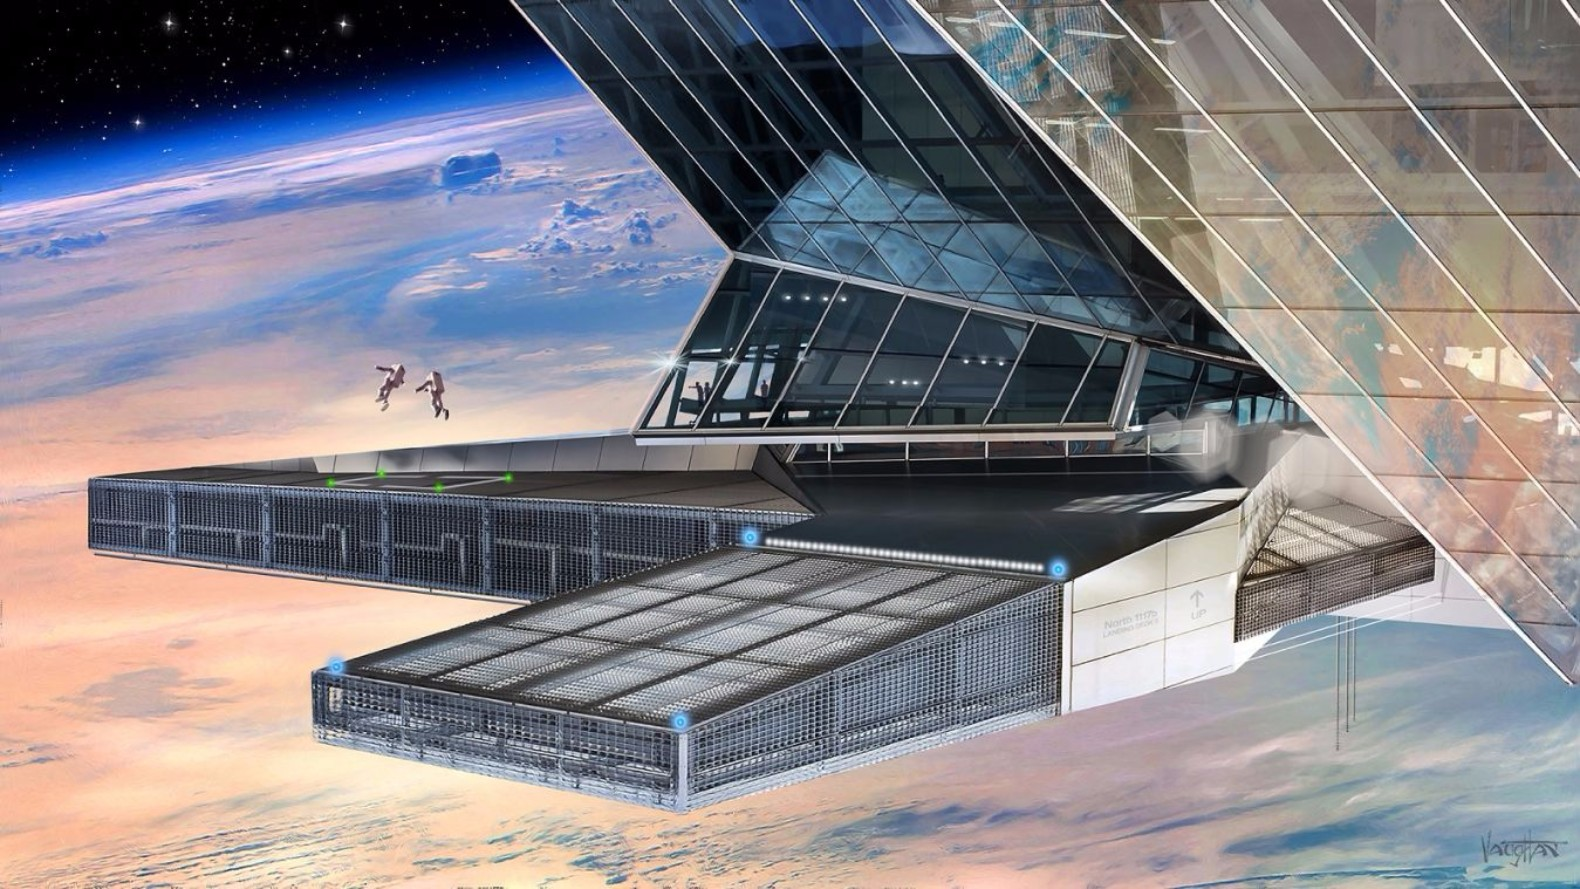 International space station inhabitat green design innovation architecture green building - Homes built from recycled materials nasas outer space challenge ...